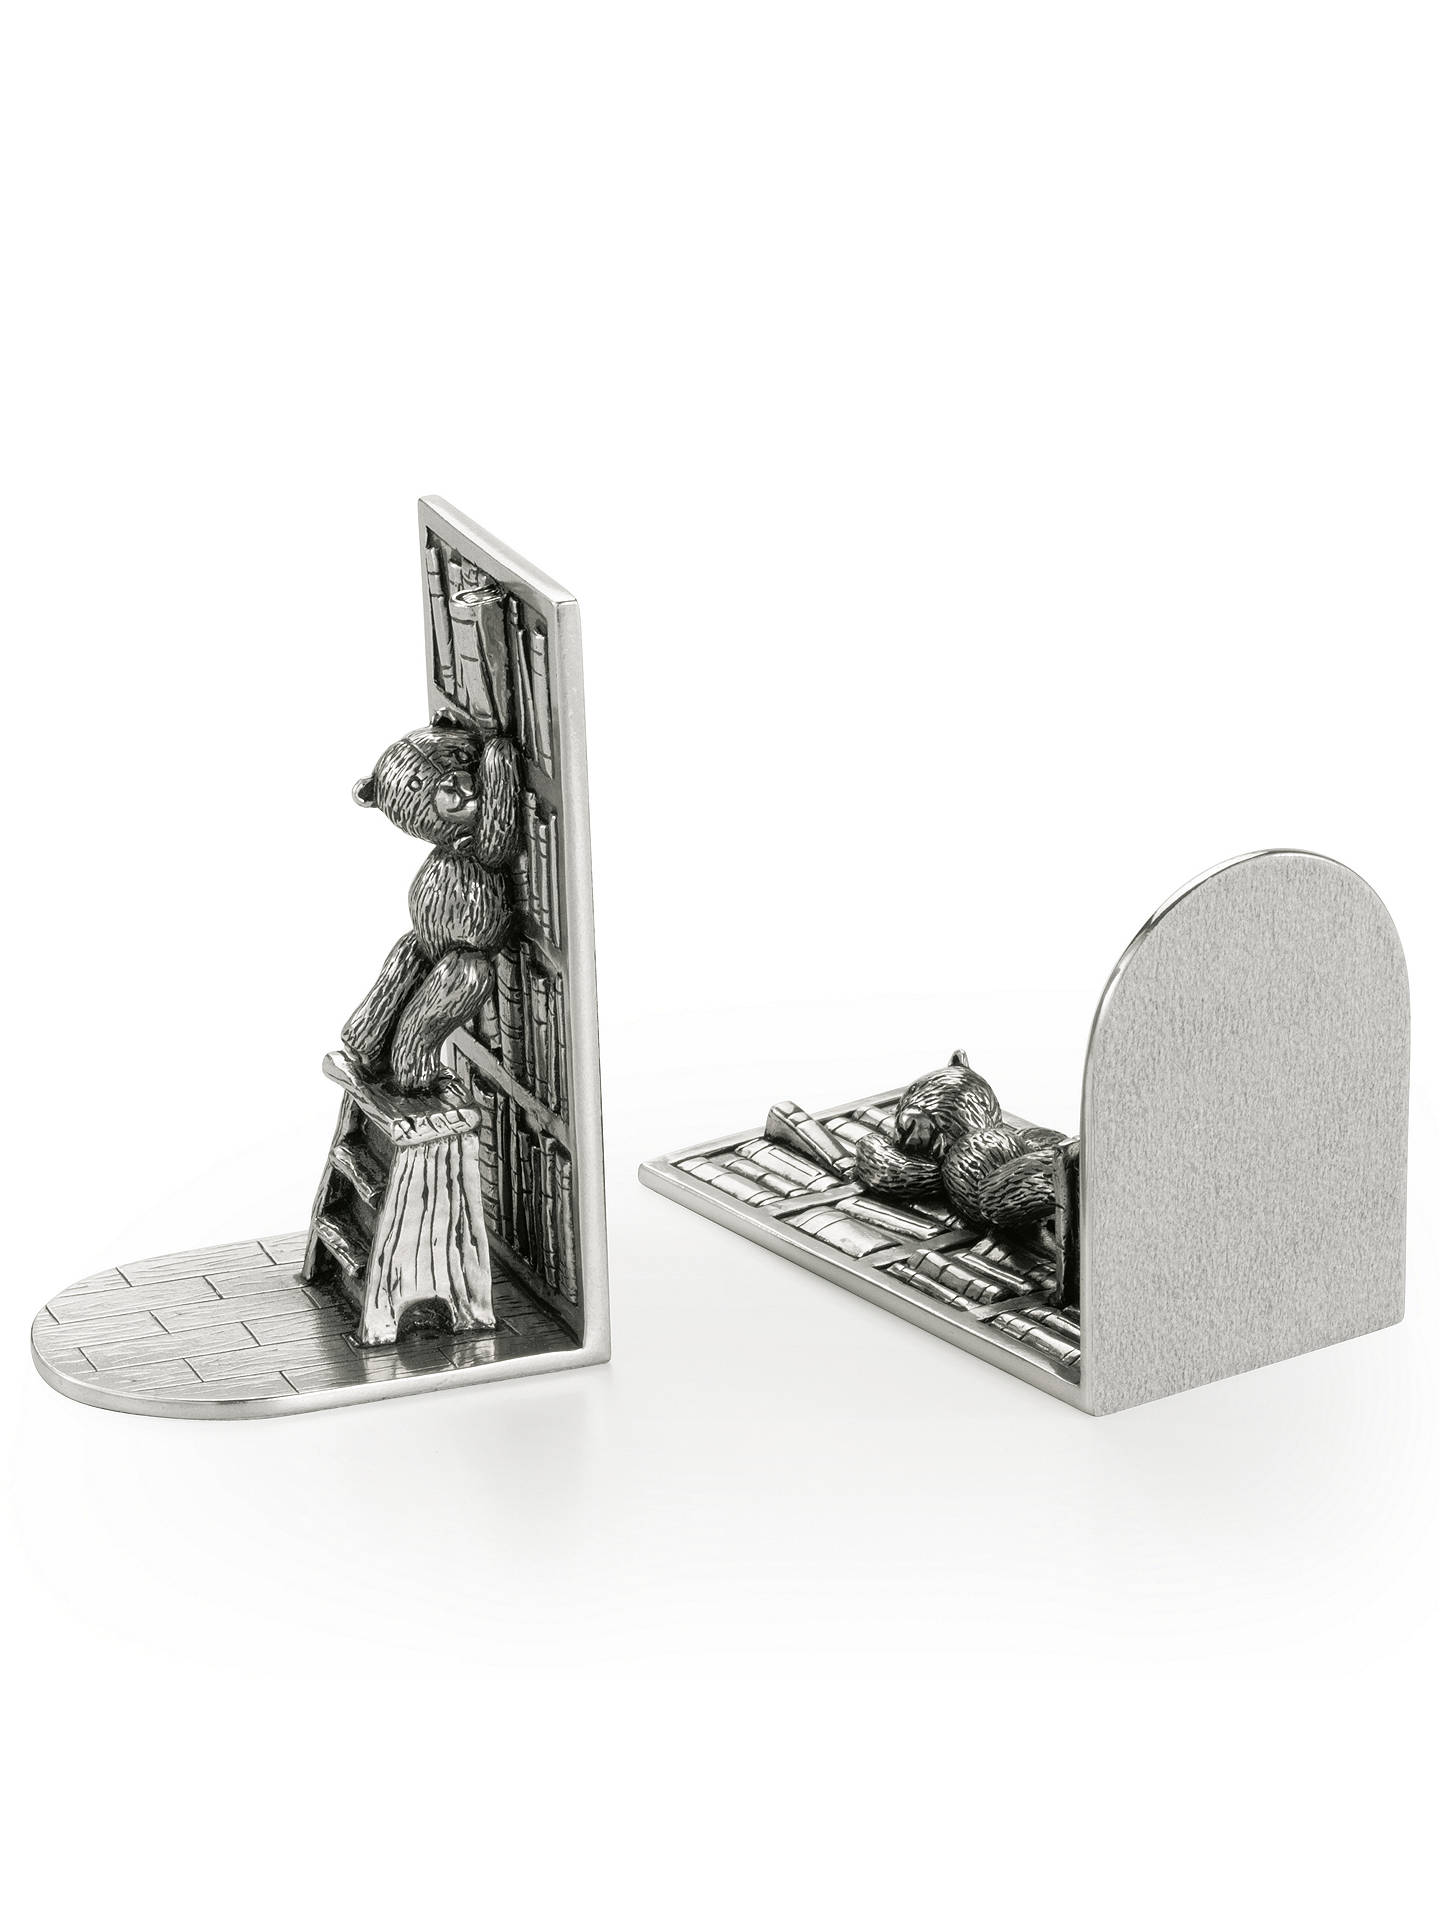 BuyRoyal Selangor Teddy Bears Picnic Bookends, Silver Online at johnlewis.com